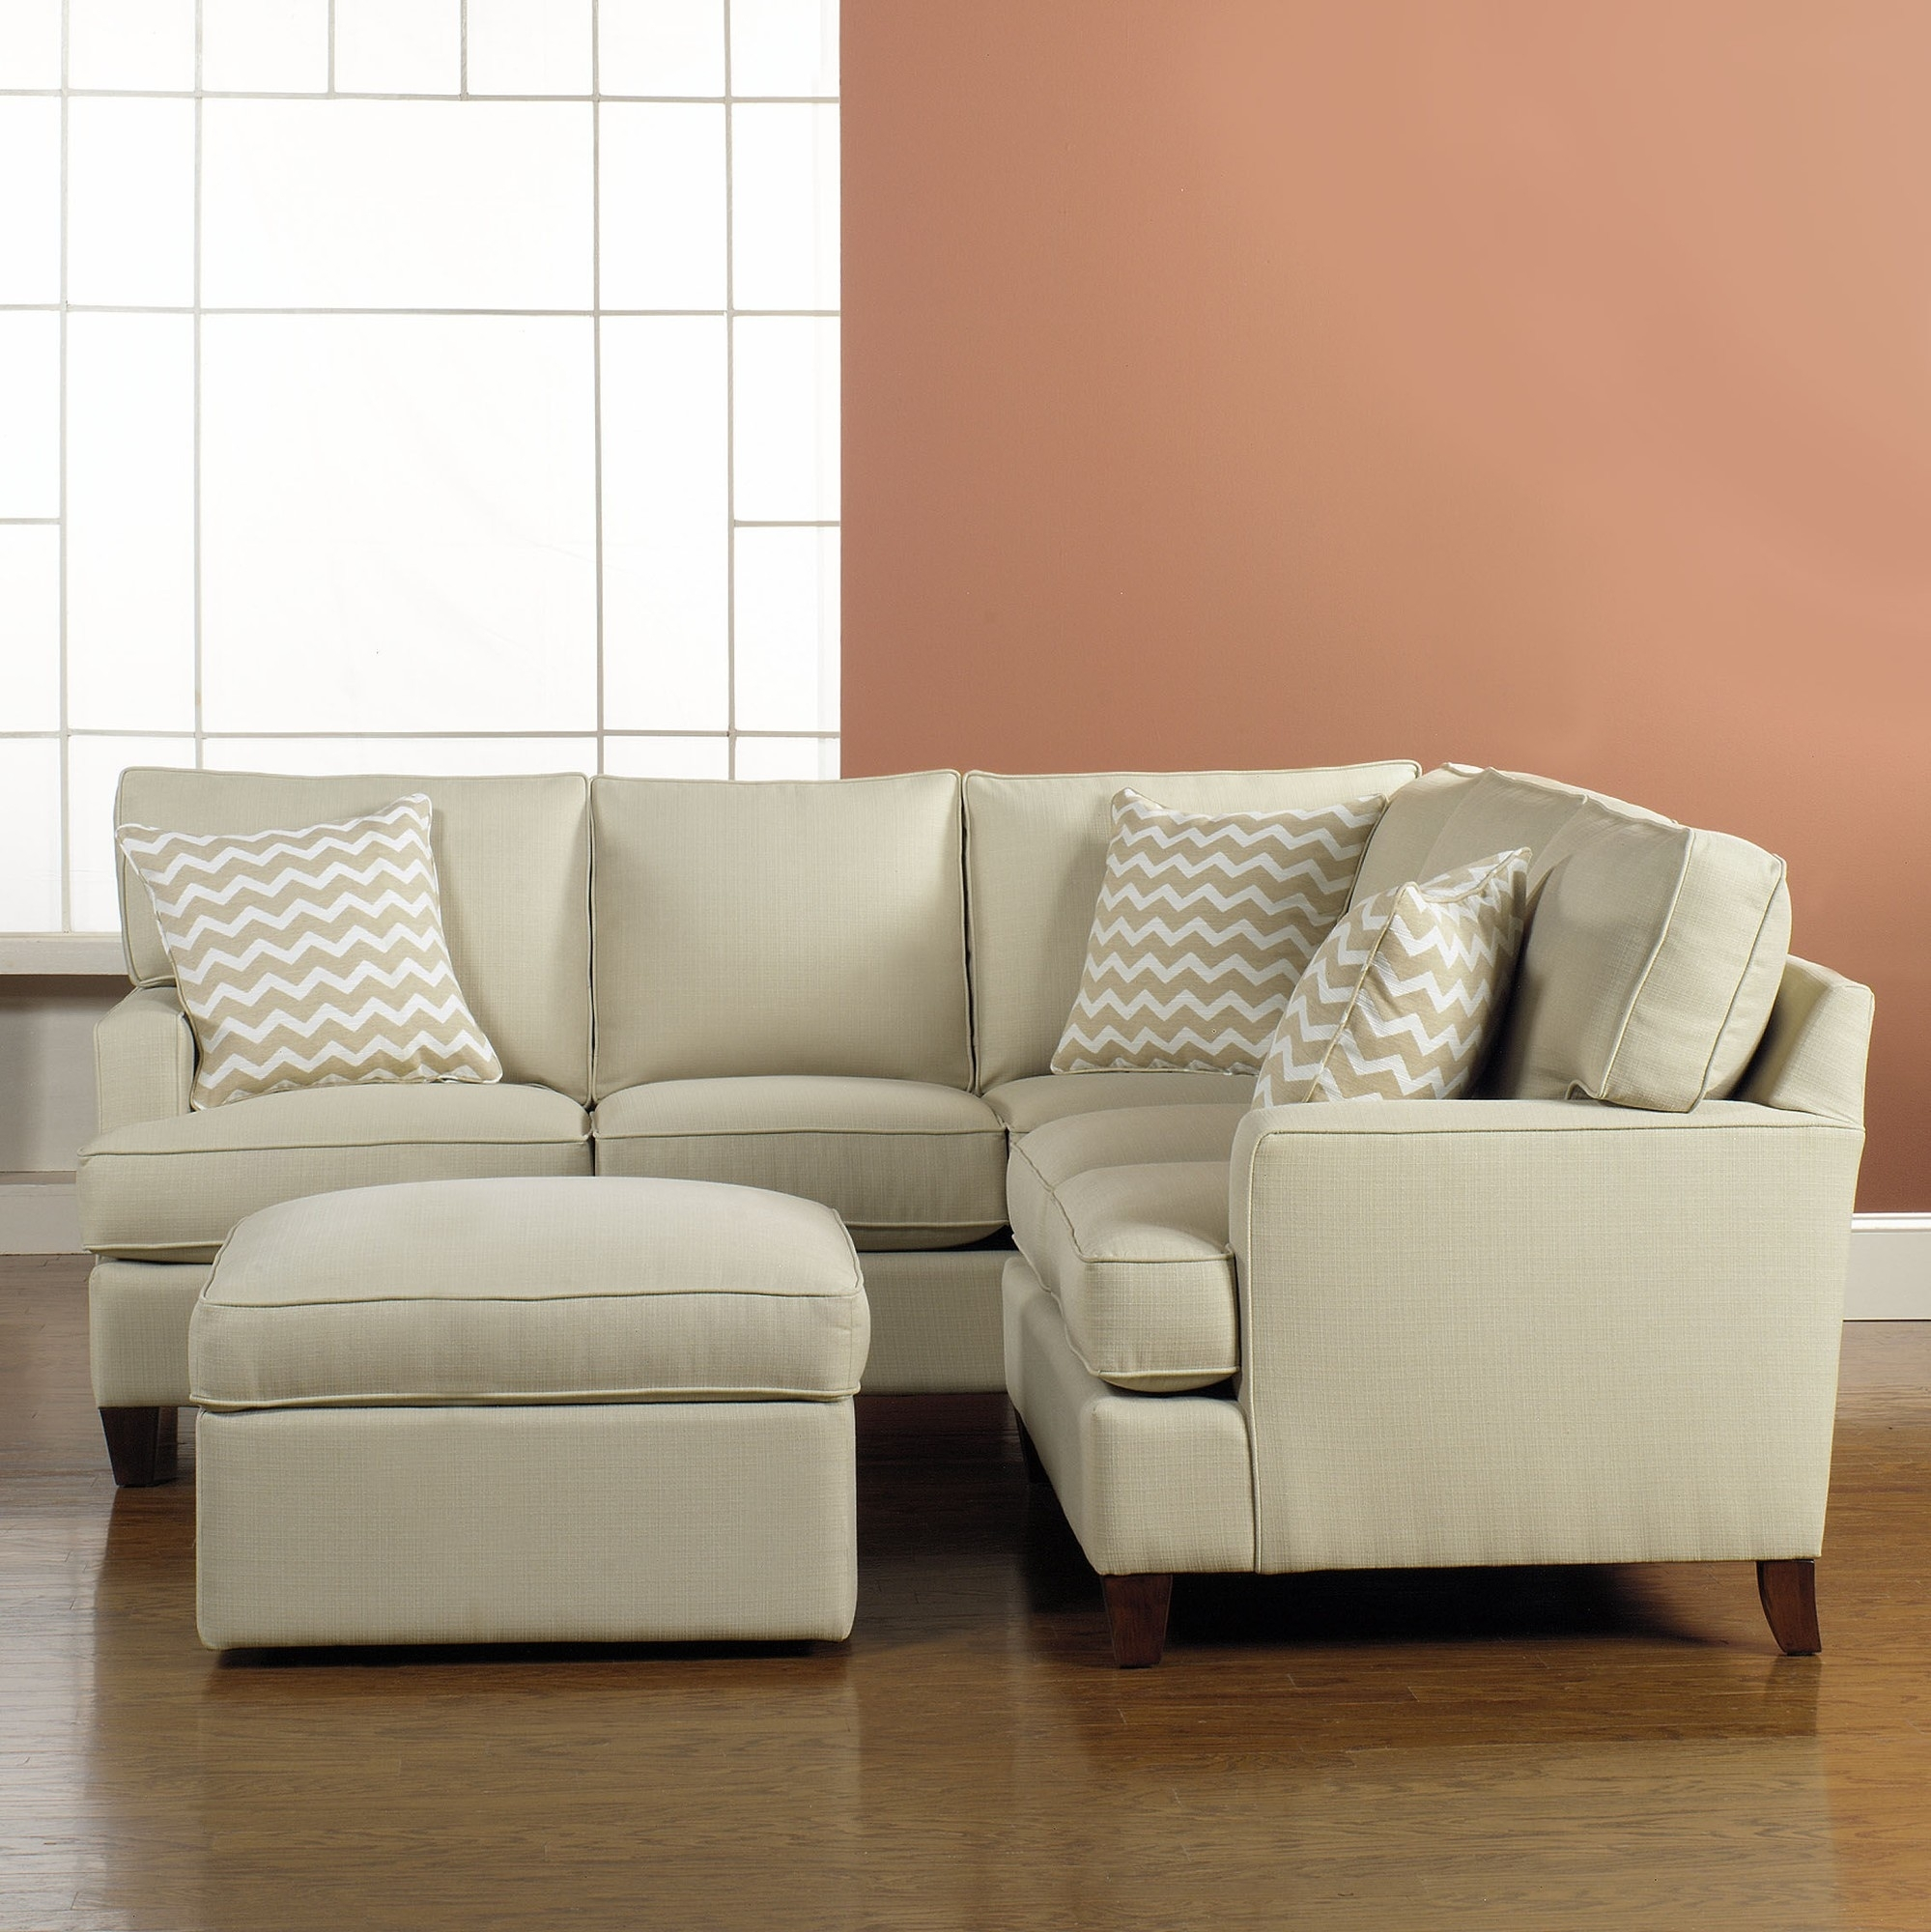 Awesome Small Sectional Sofa For Small Spaces - Buildsimplehome inside Sectional Sofas For Small Places (Image 3 of 10)